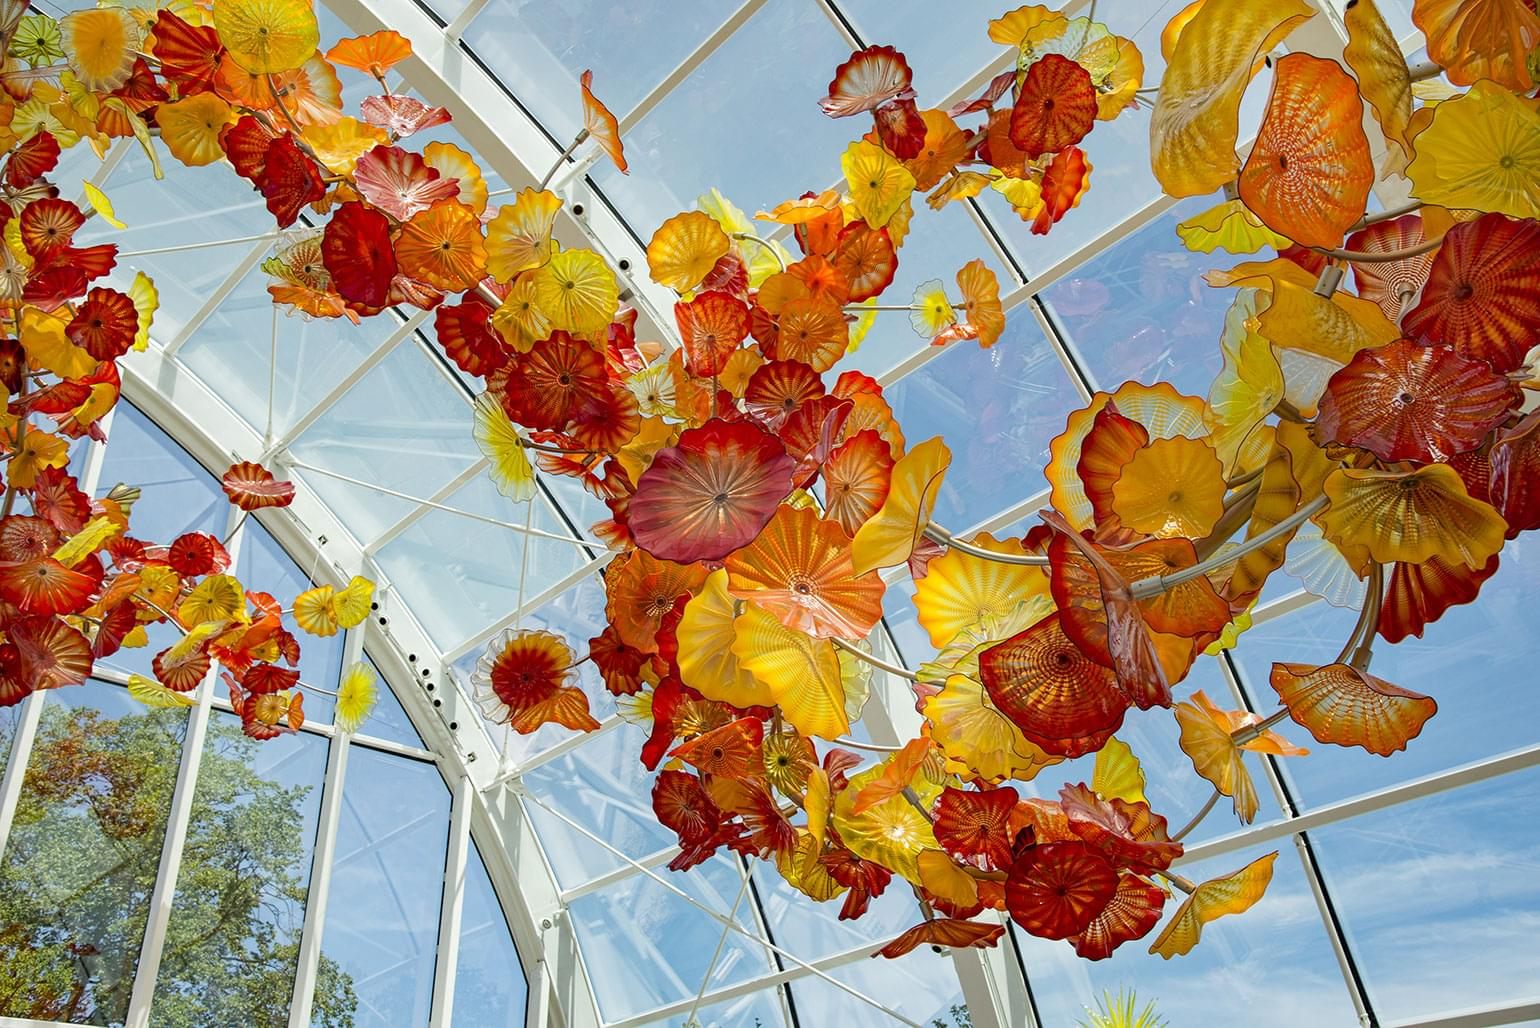 Large Chiluly glass exhibit inside large glass sunroom at the foot of the Space Needle.